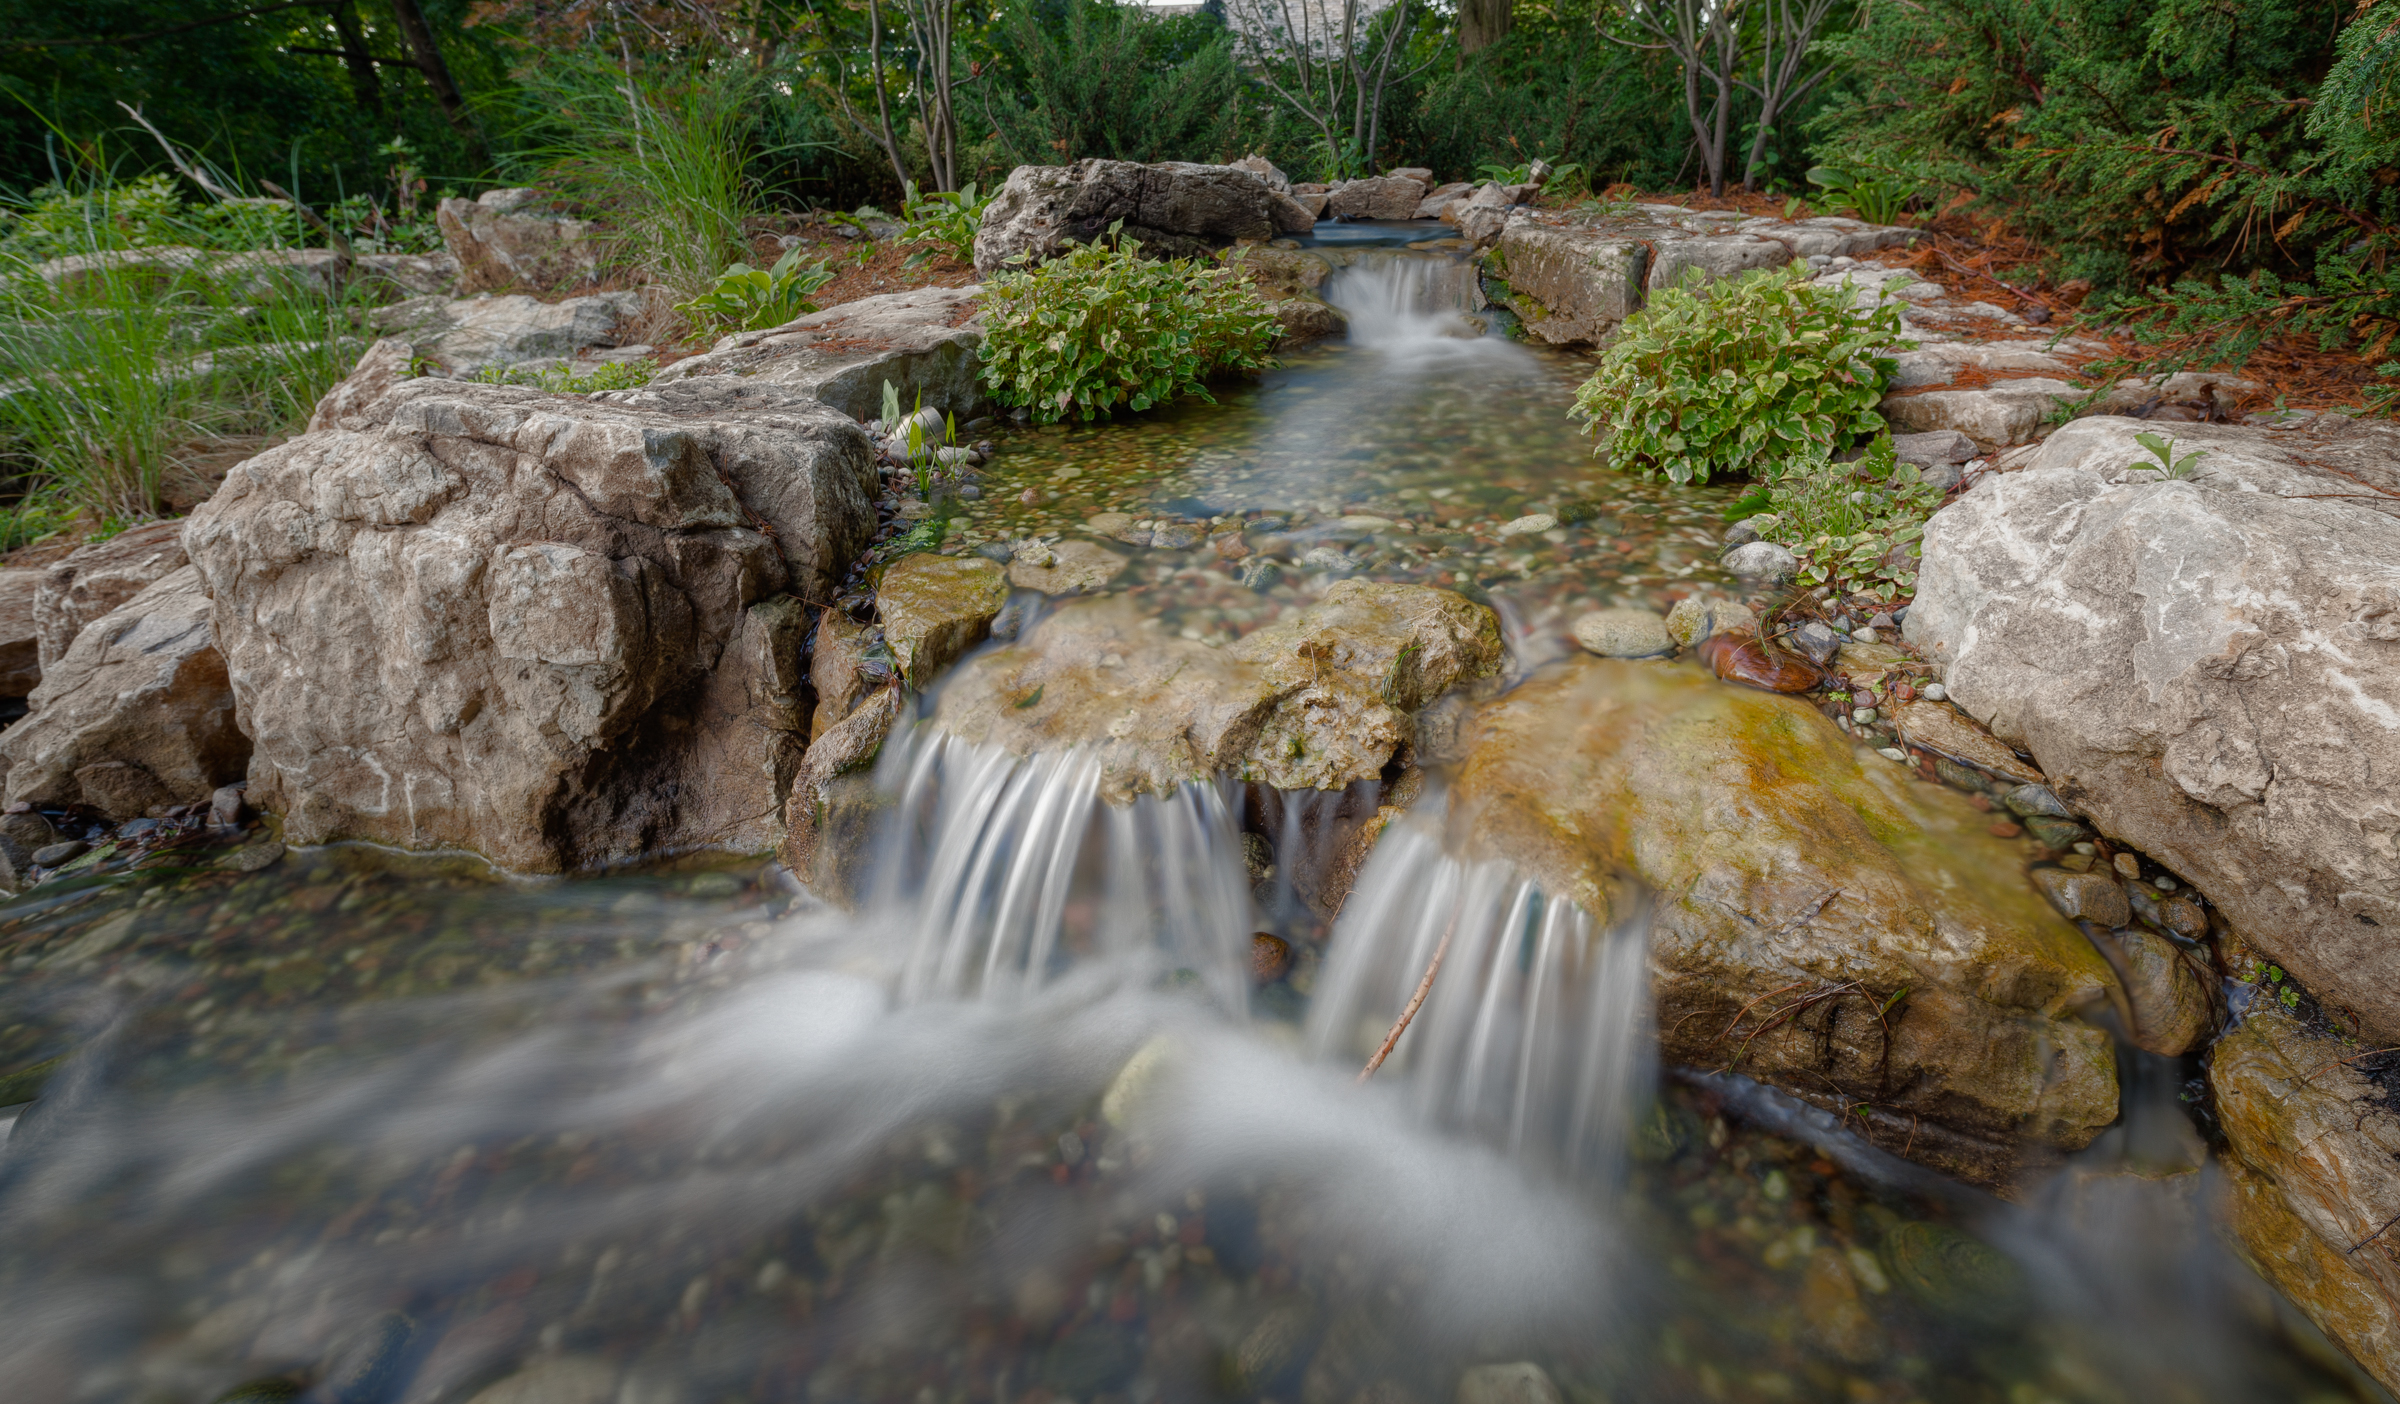 Landscape Ontario Award of Excellence Winner for Water ...